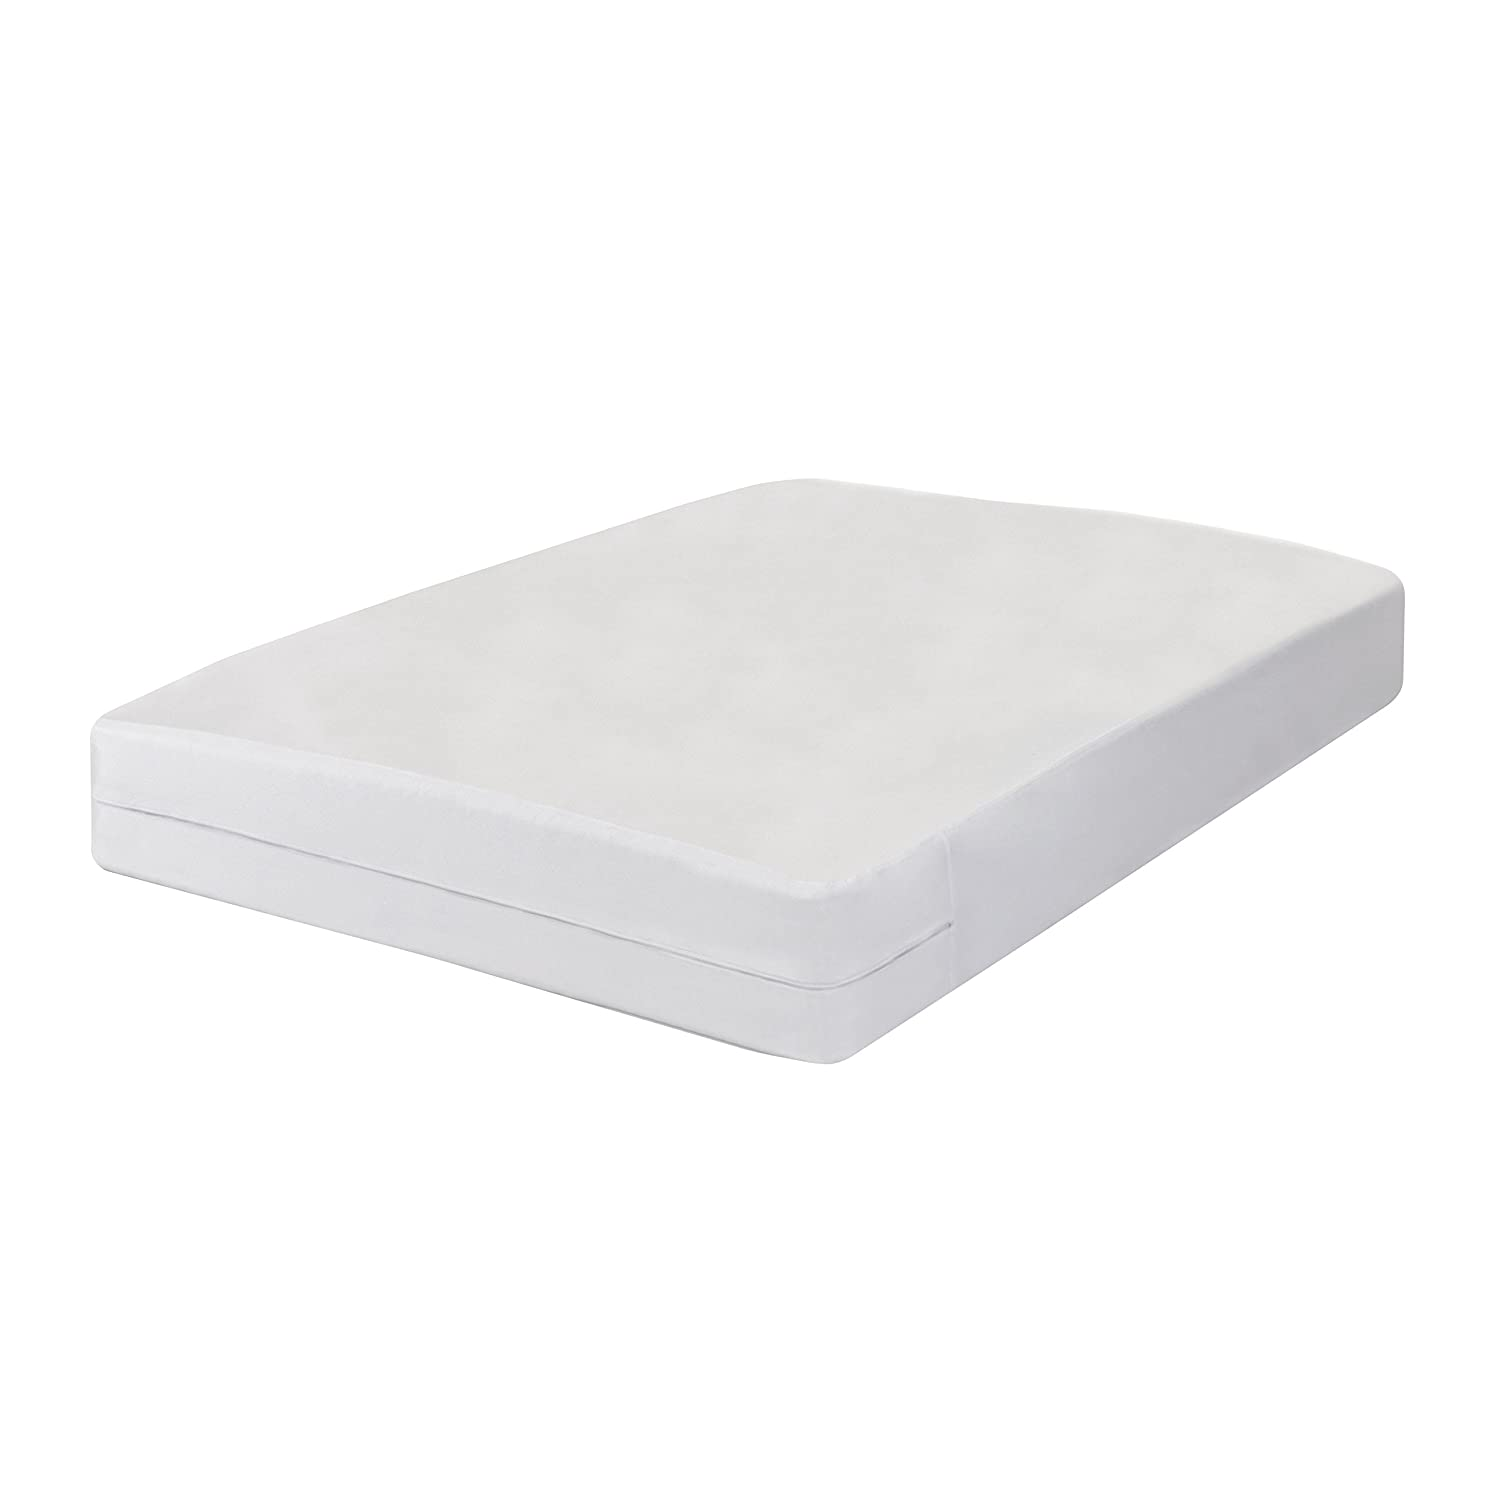 Bed Bug Blocker Hypoallergenic All In One Breathable Twin Mattress Cover Encasement Protector Zippered Water Resistant Dust Mite Allergens Insects FRE146XXWHIT01